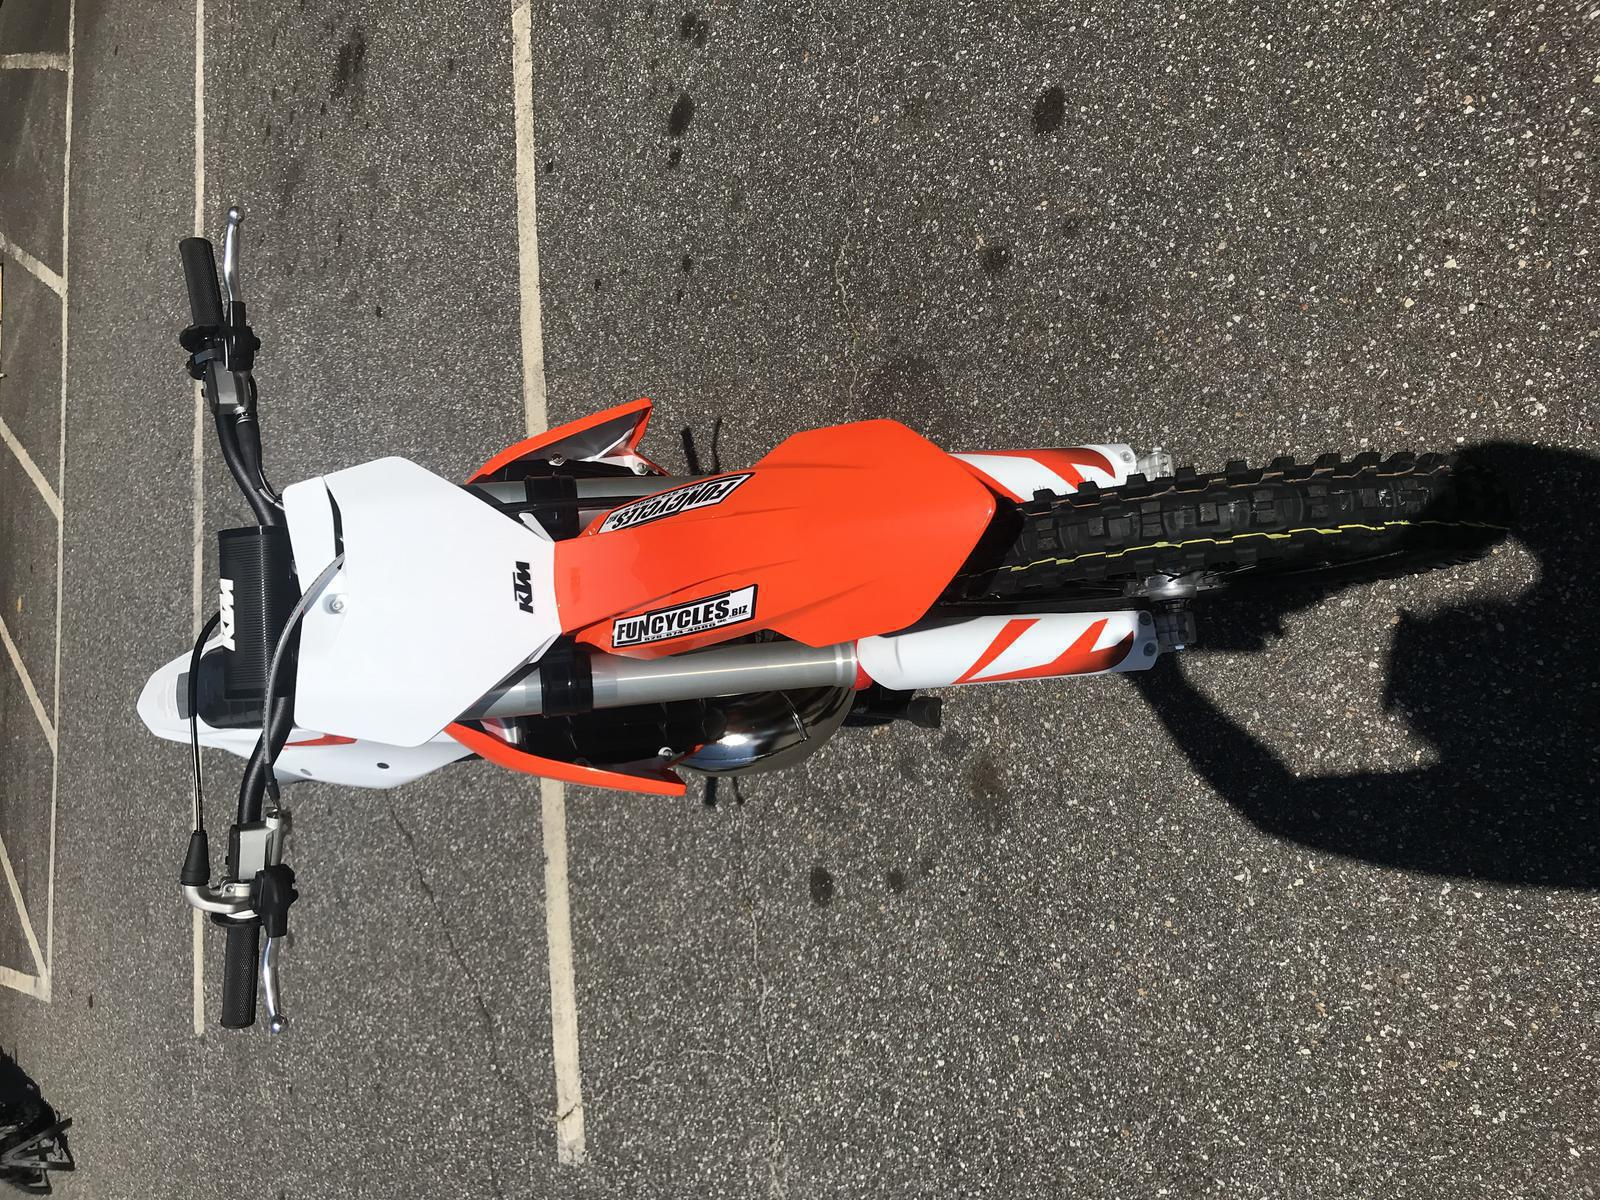 2020 KTM 250 SX for sale in VALDESE, NC  FUN CYCLES, INC